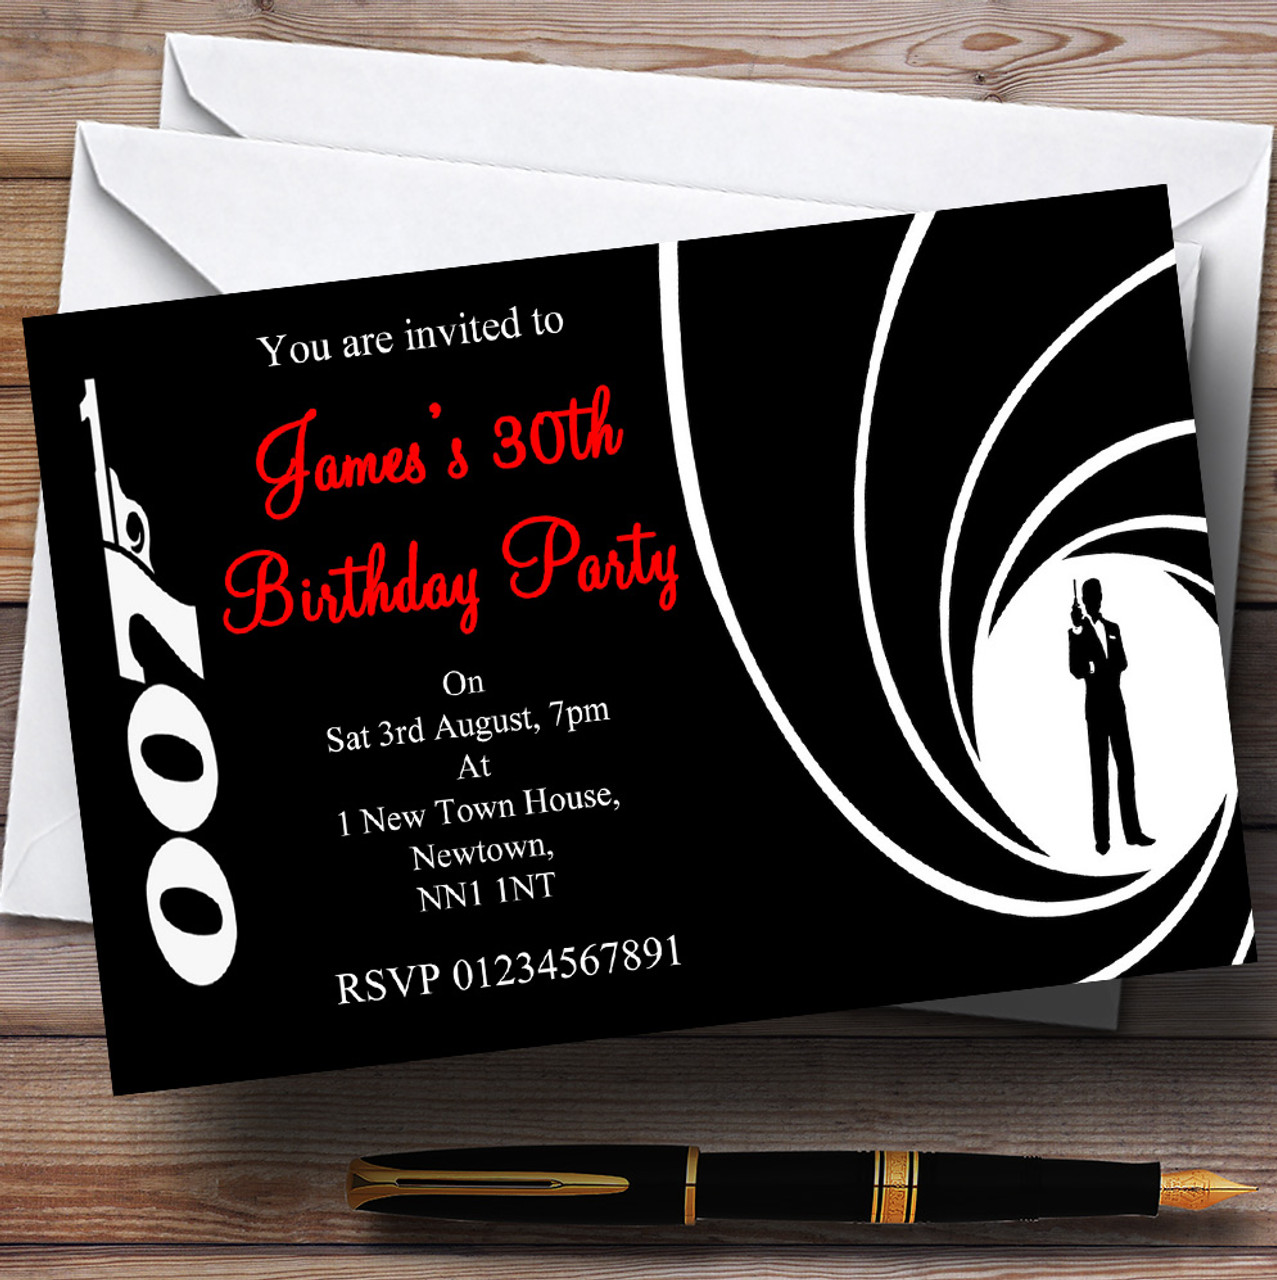 James bond personalised party invitations the card zoo james bond personalised party invitations stopboris Images